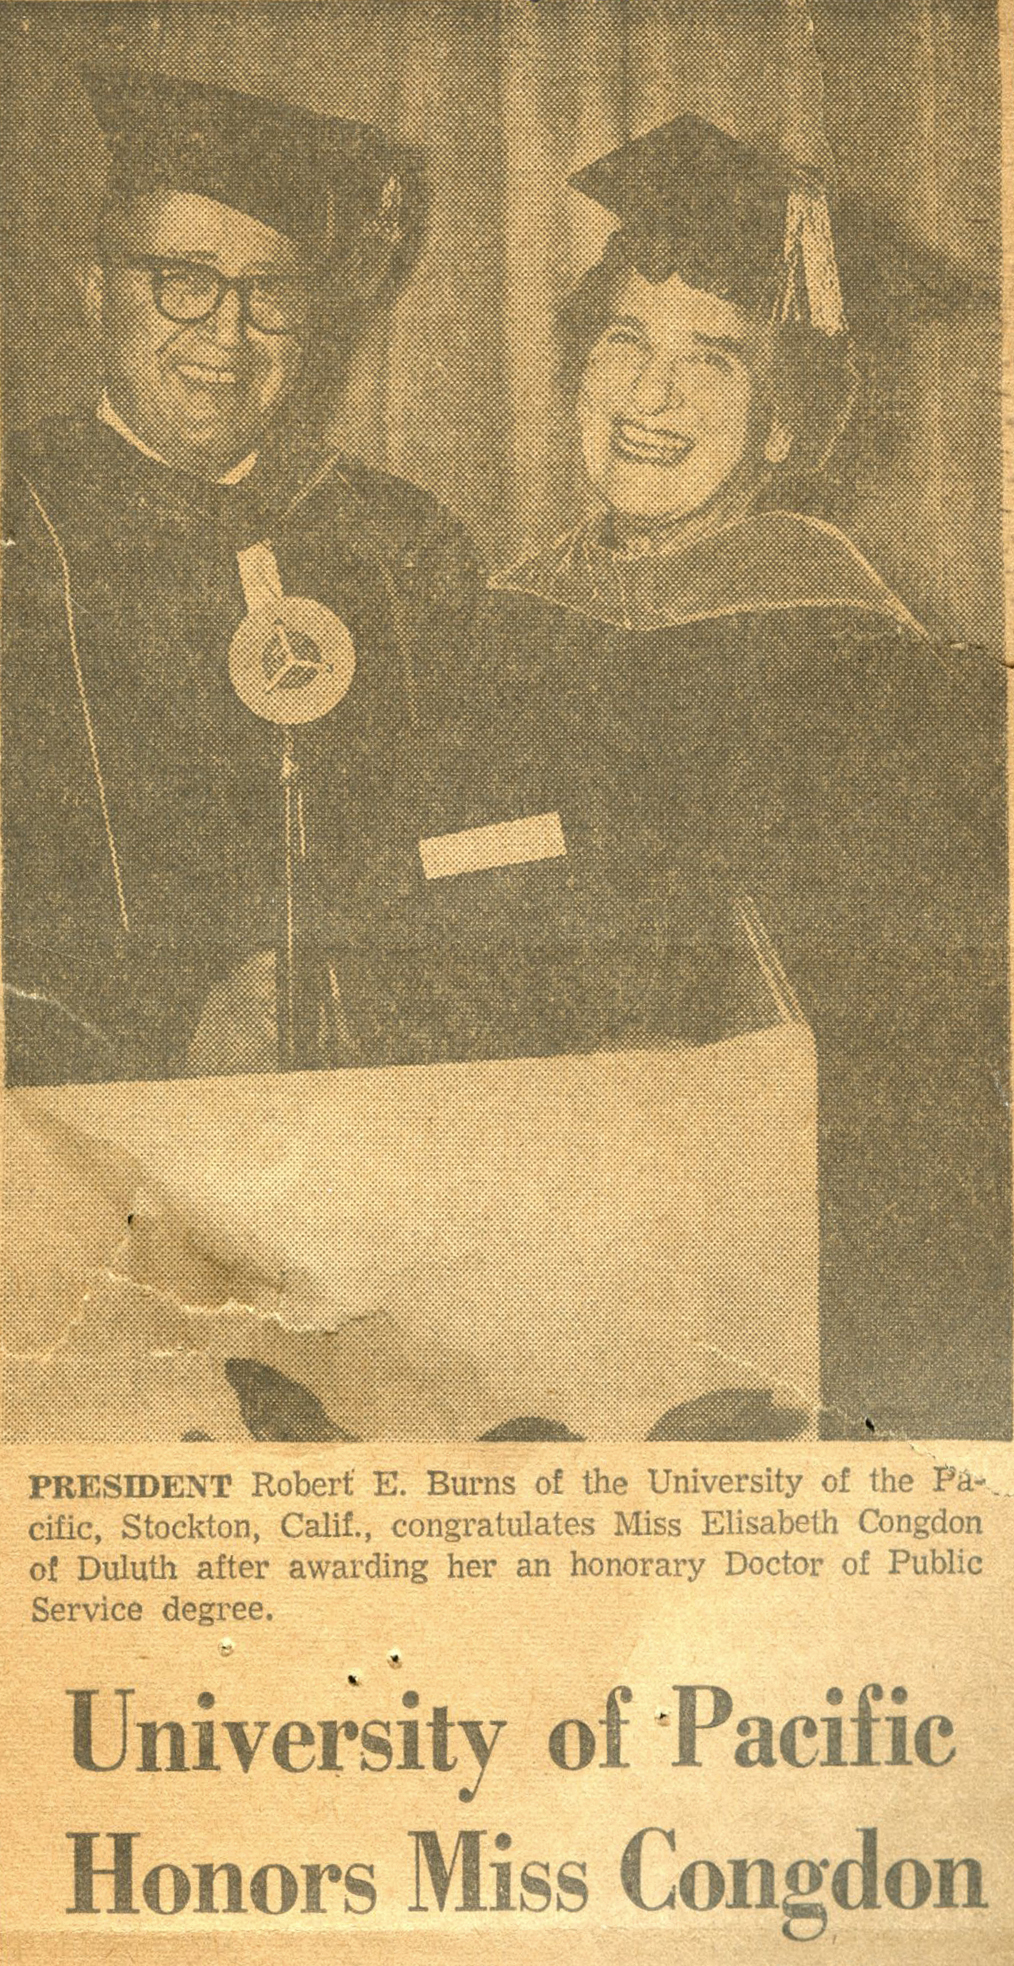 A newspaper clipping of Elisabeth Congdon being honored by the University of Pacific.